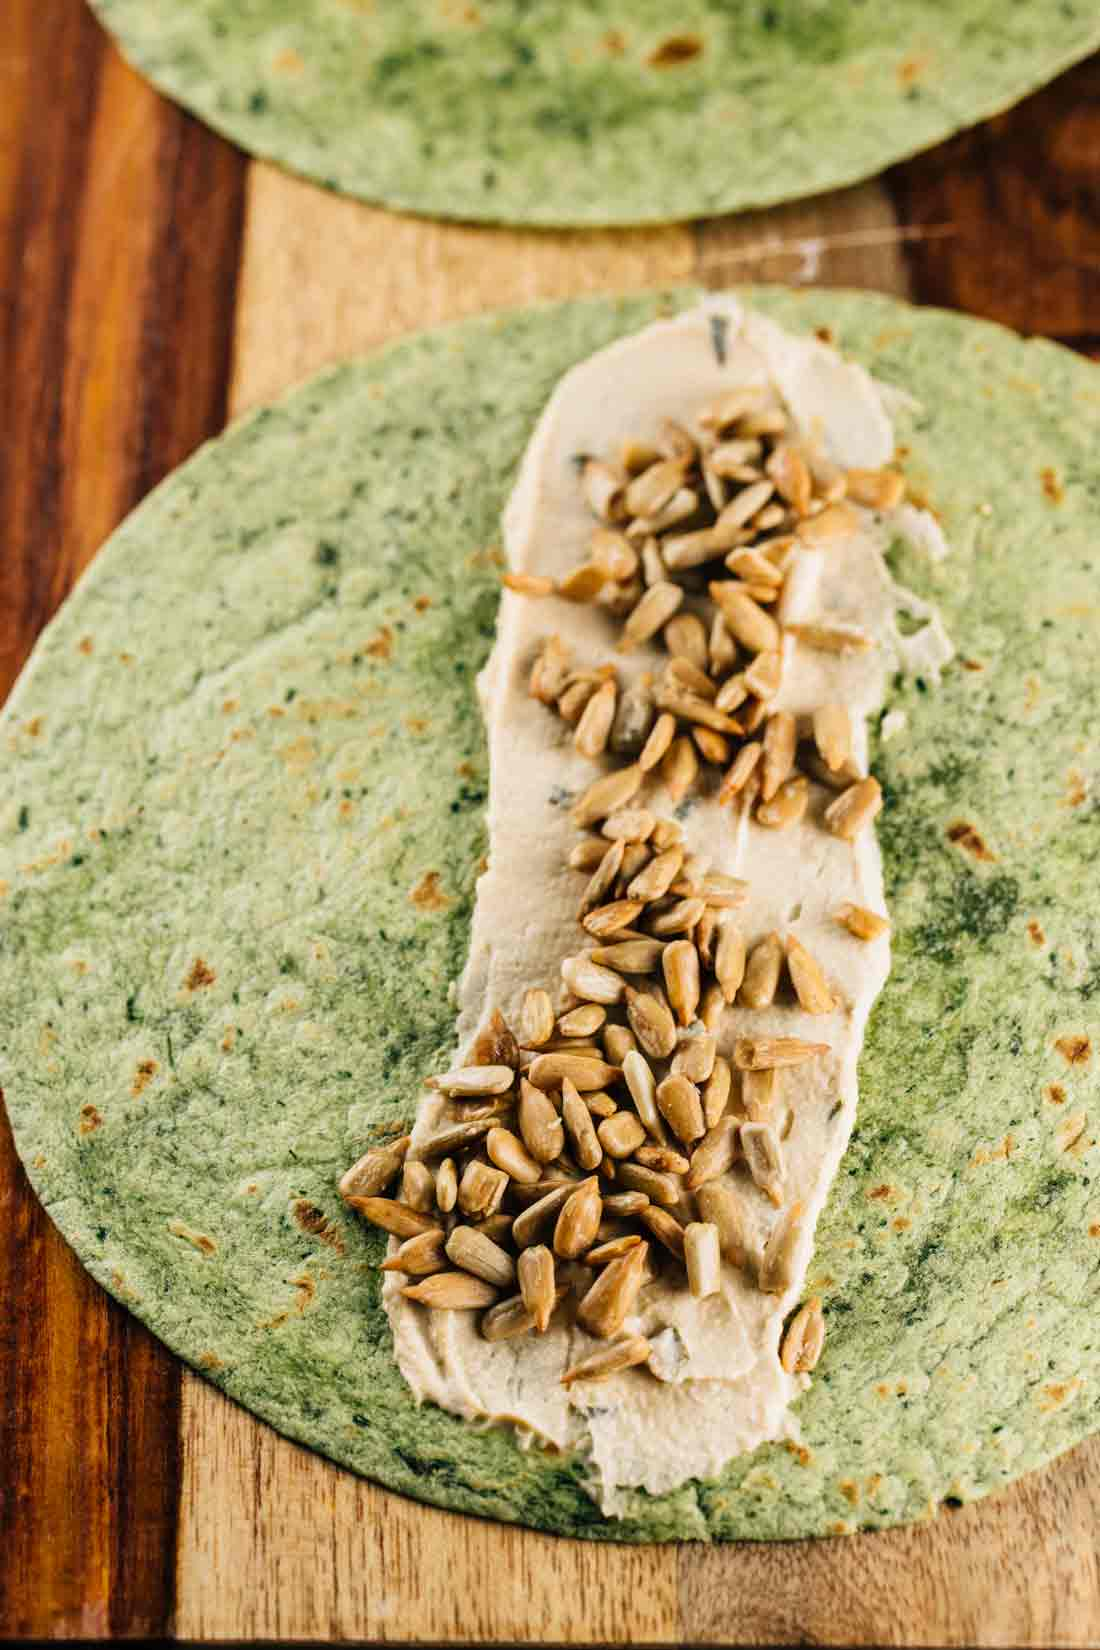 A spinach tortilla with a layer of hummus and sunflower seeds on top.